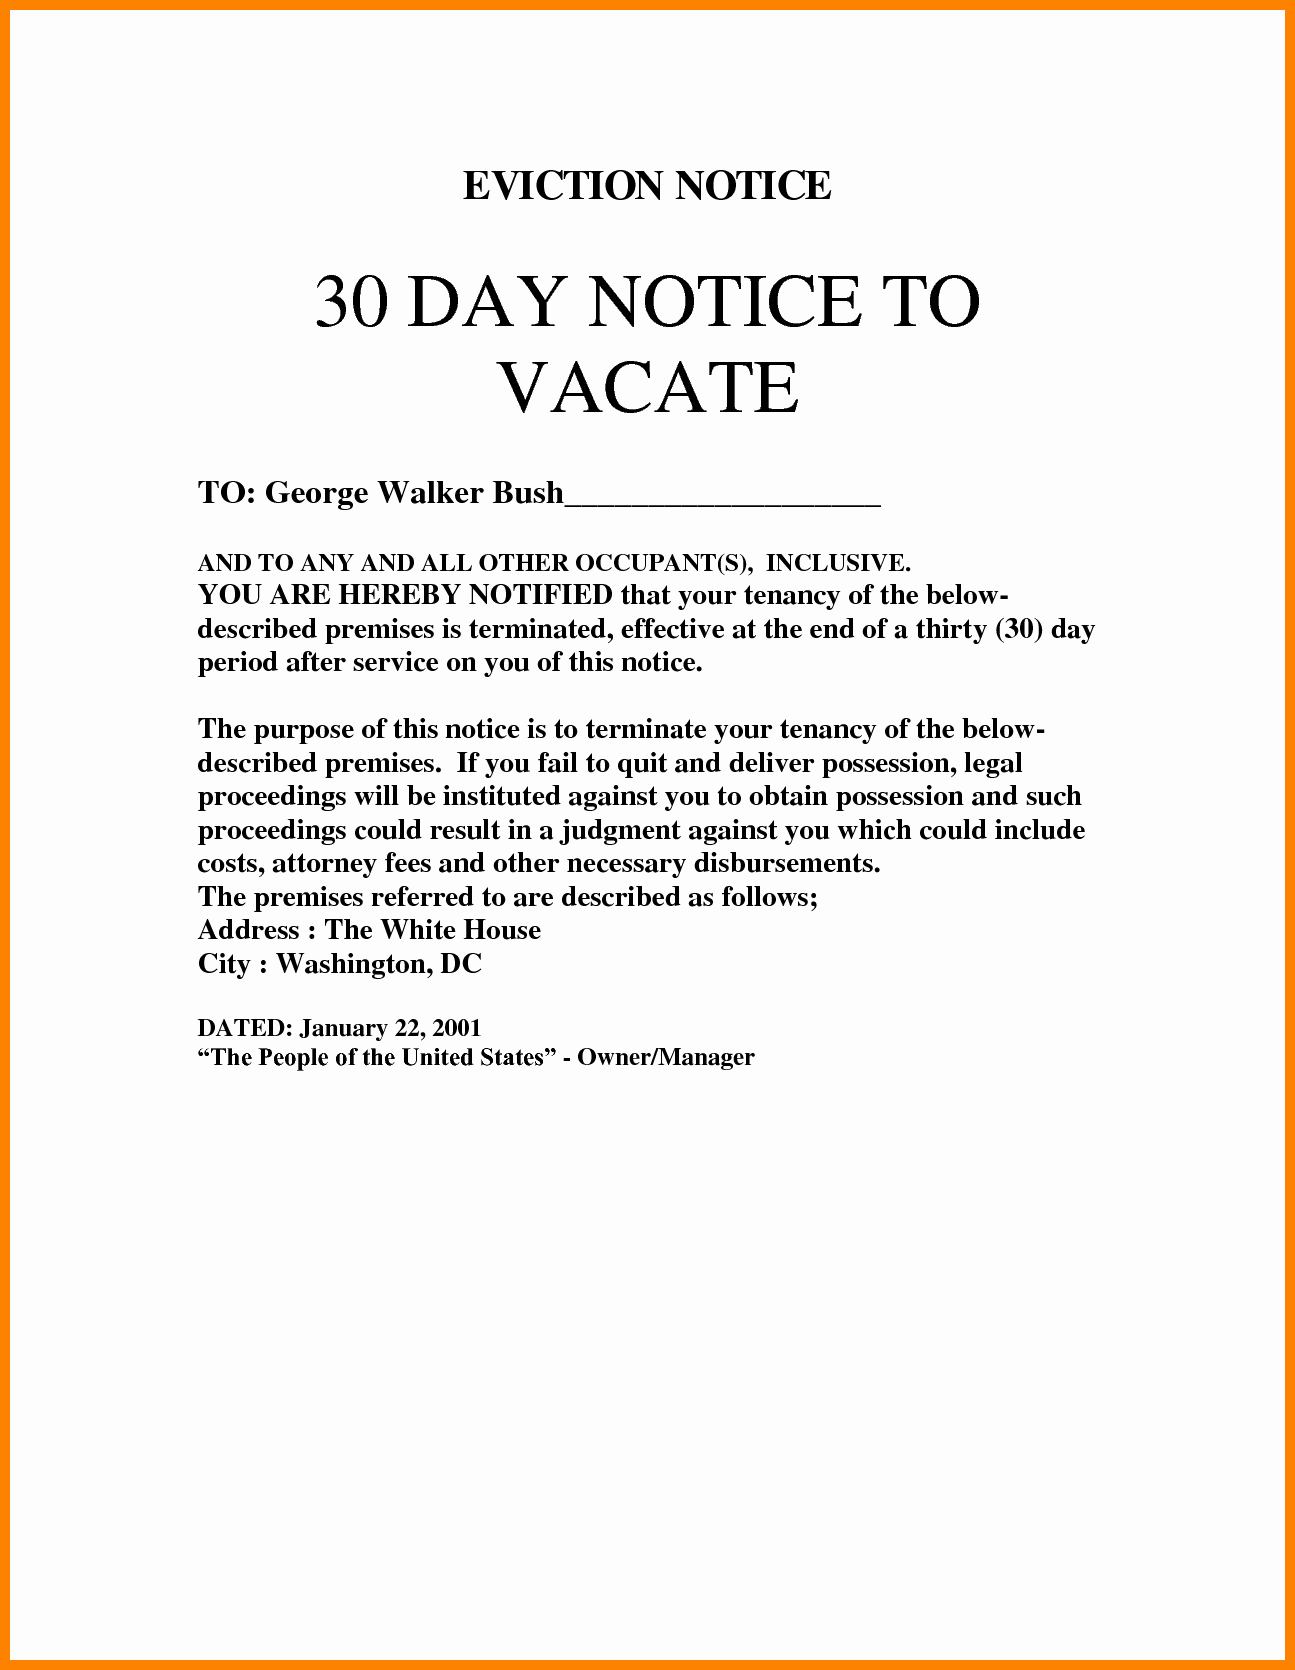 Eviction Notice Letter Template Fresh 30 Day Eviction Notice Template